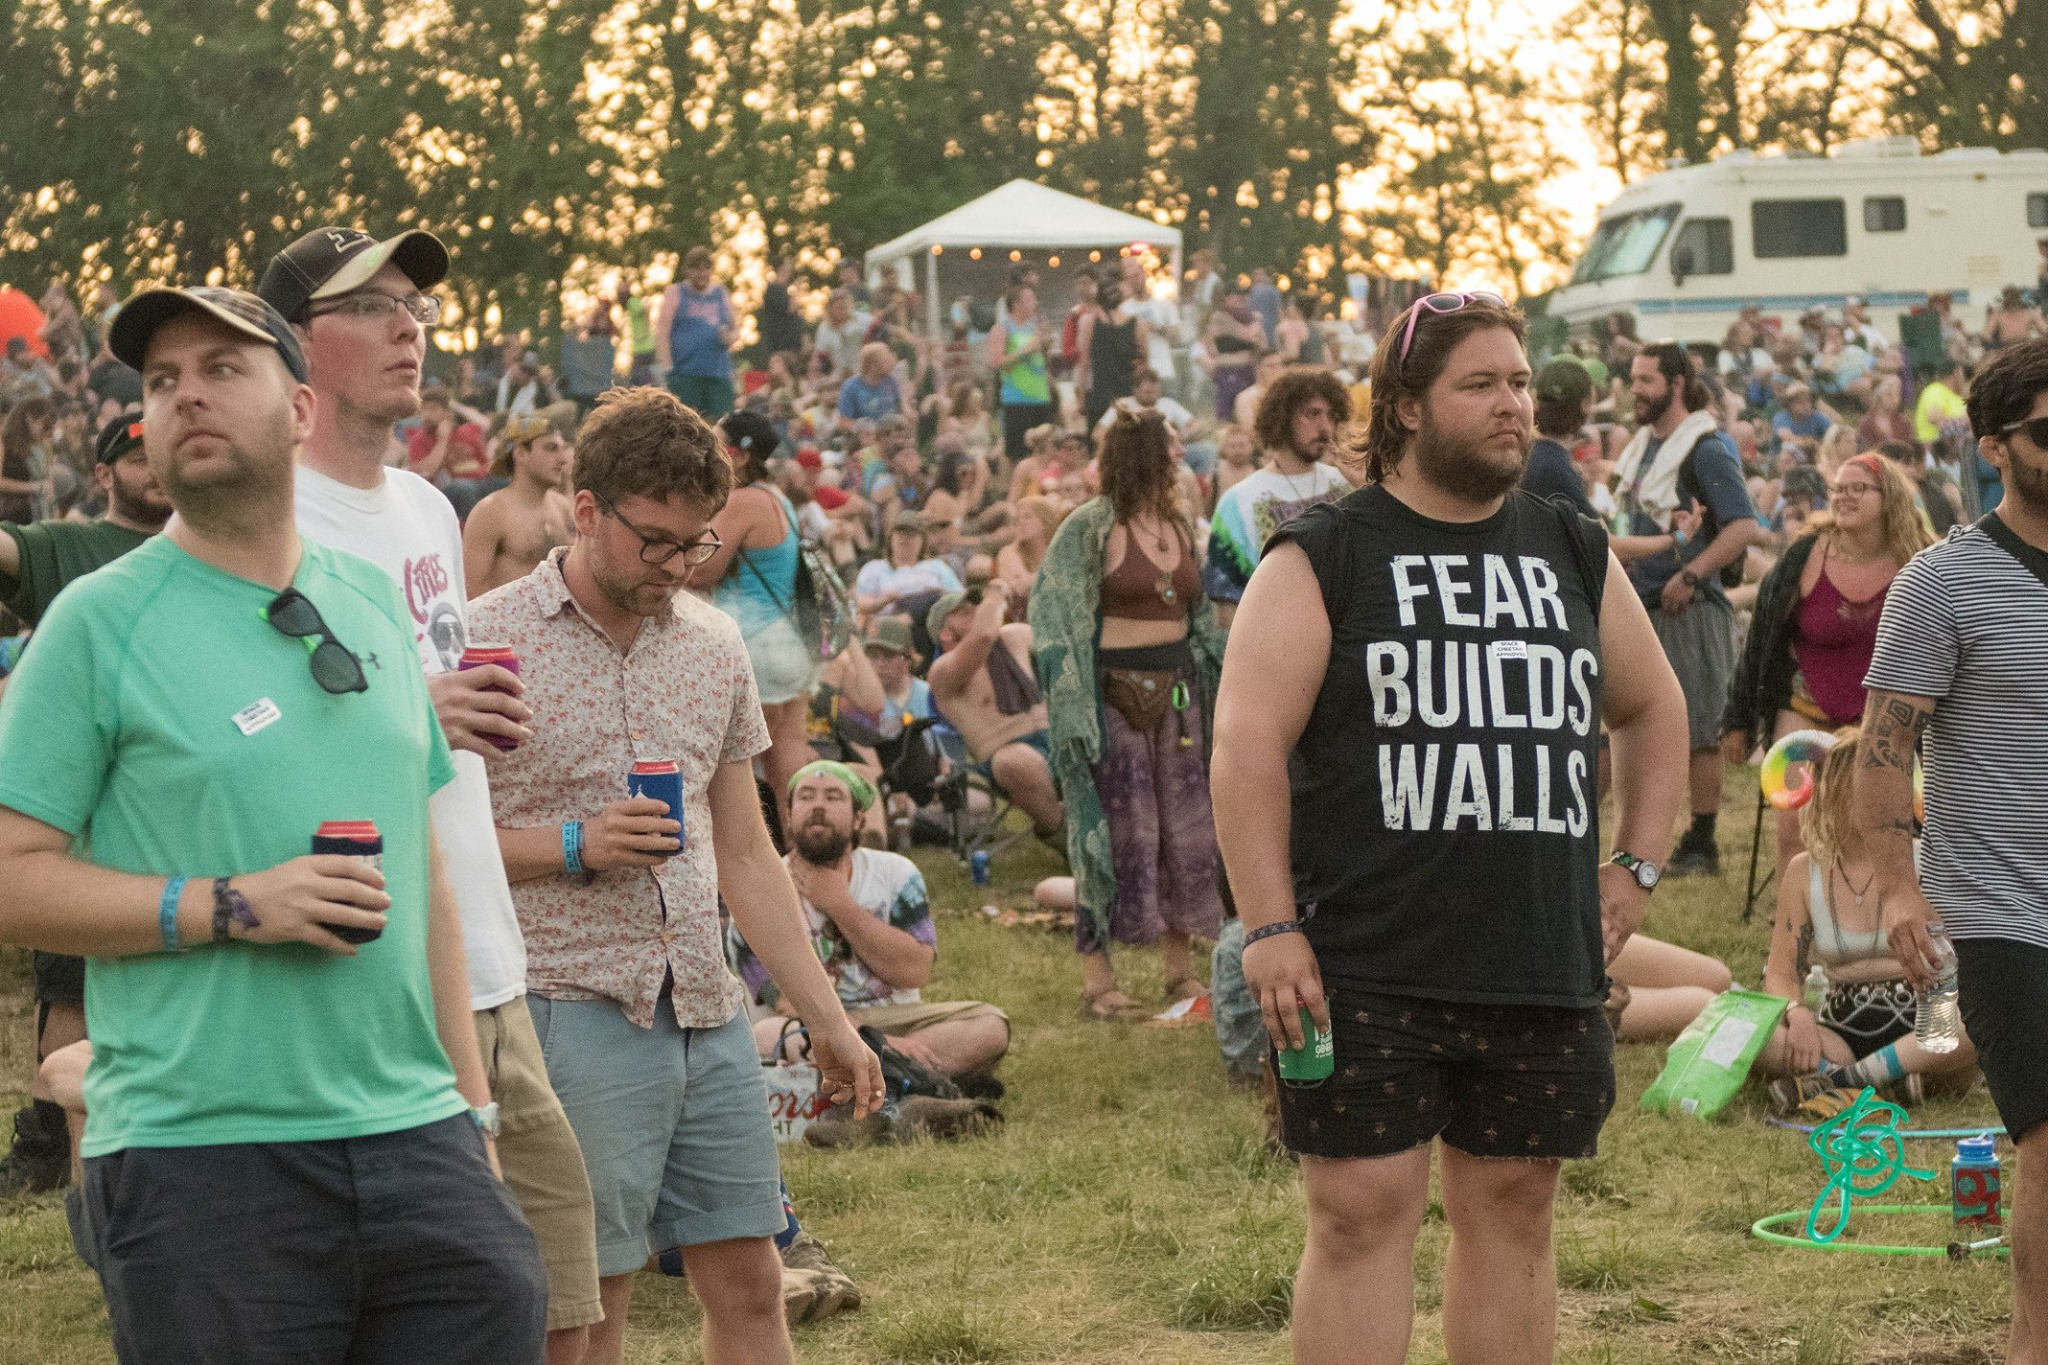 great shirt, brother! | Summer Camp Music Festival